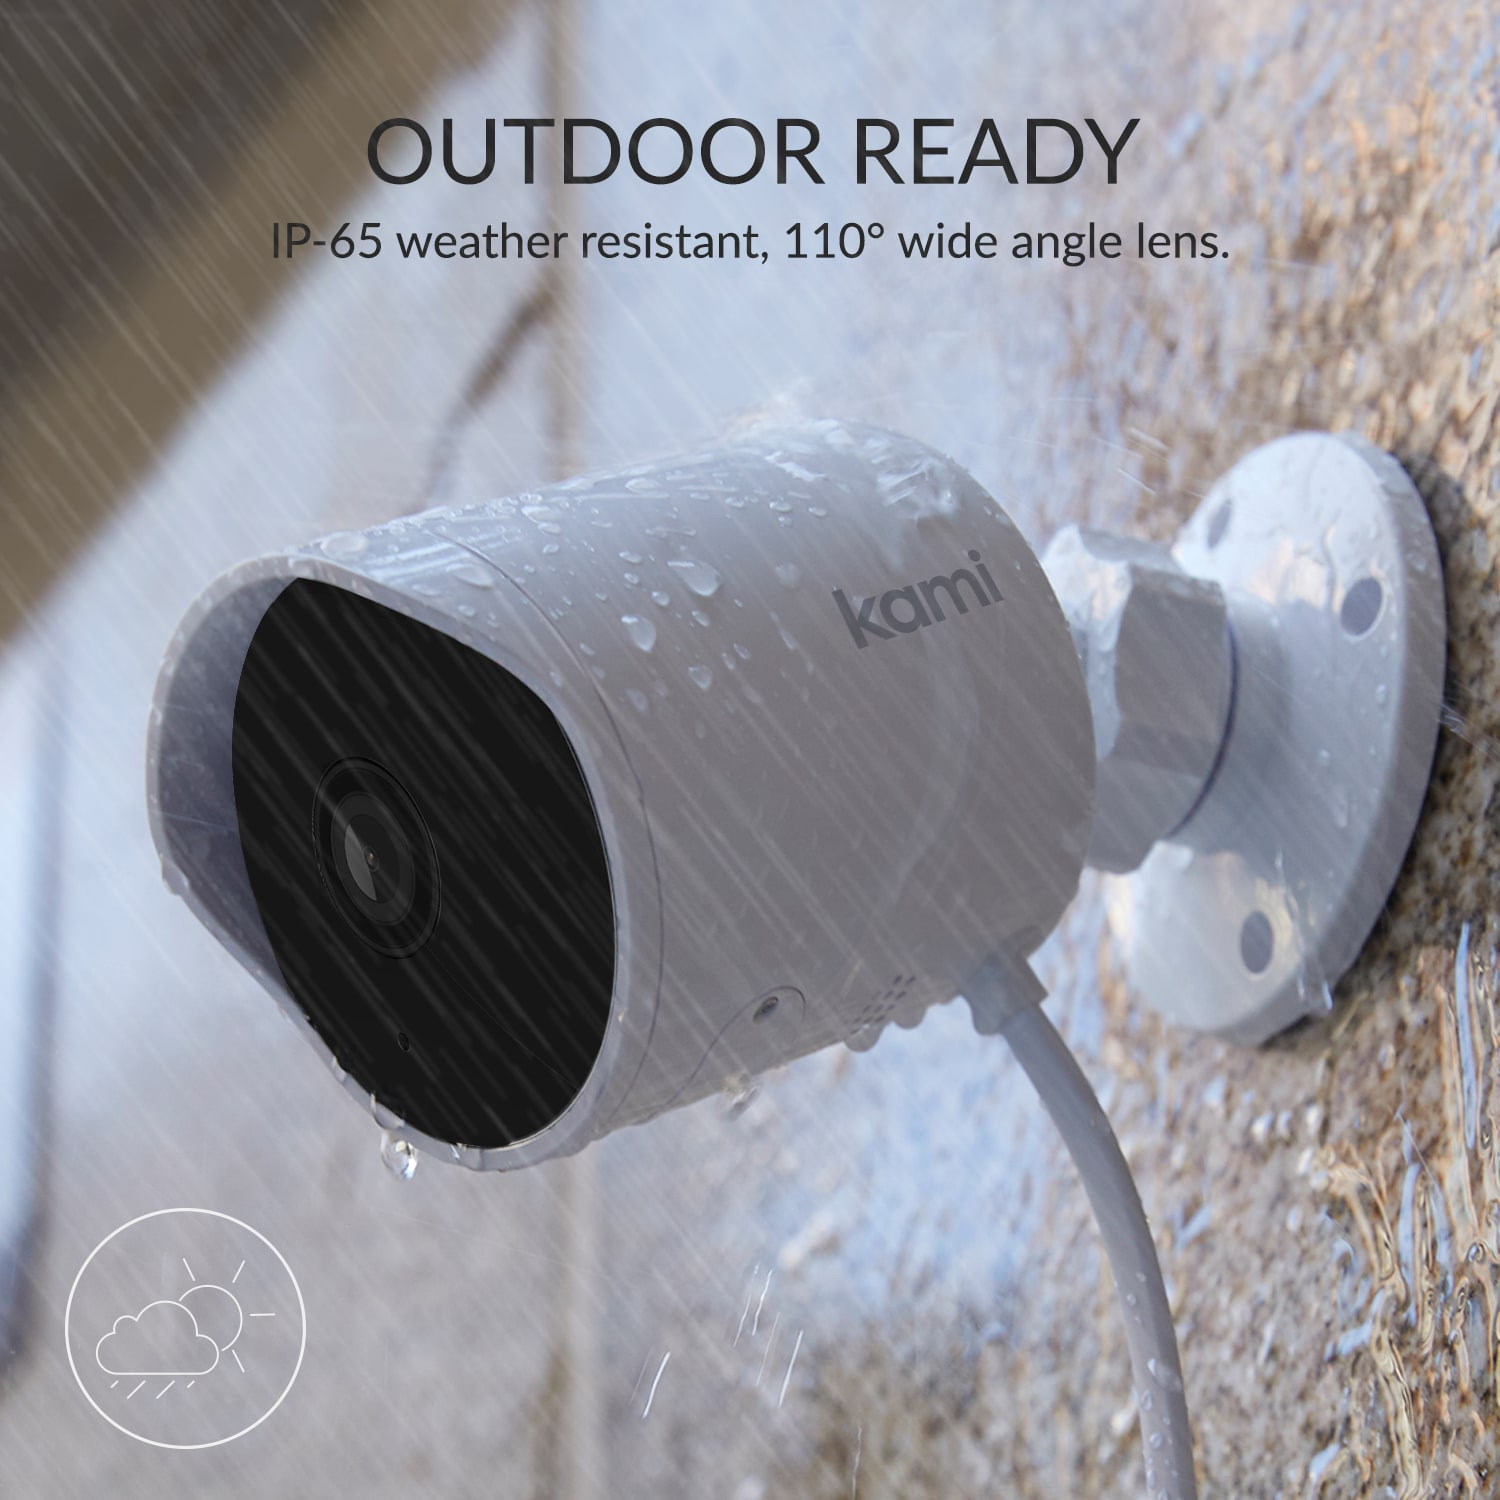 Outdoor ready - IP65 weather resistant, 110º wide angle lens